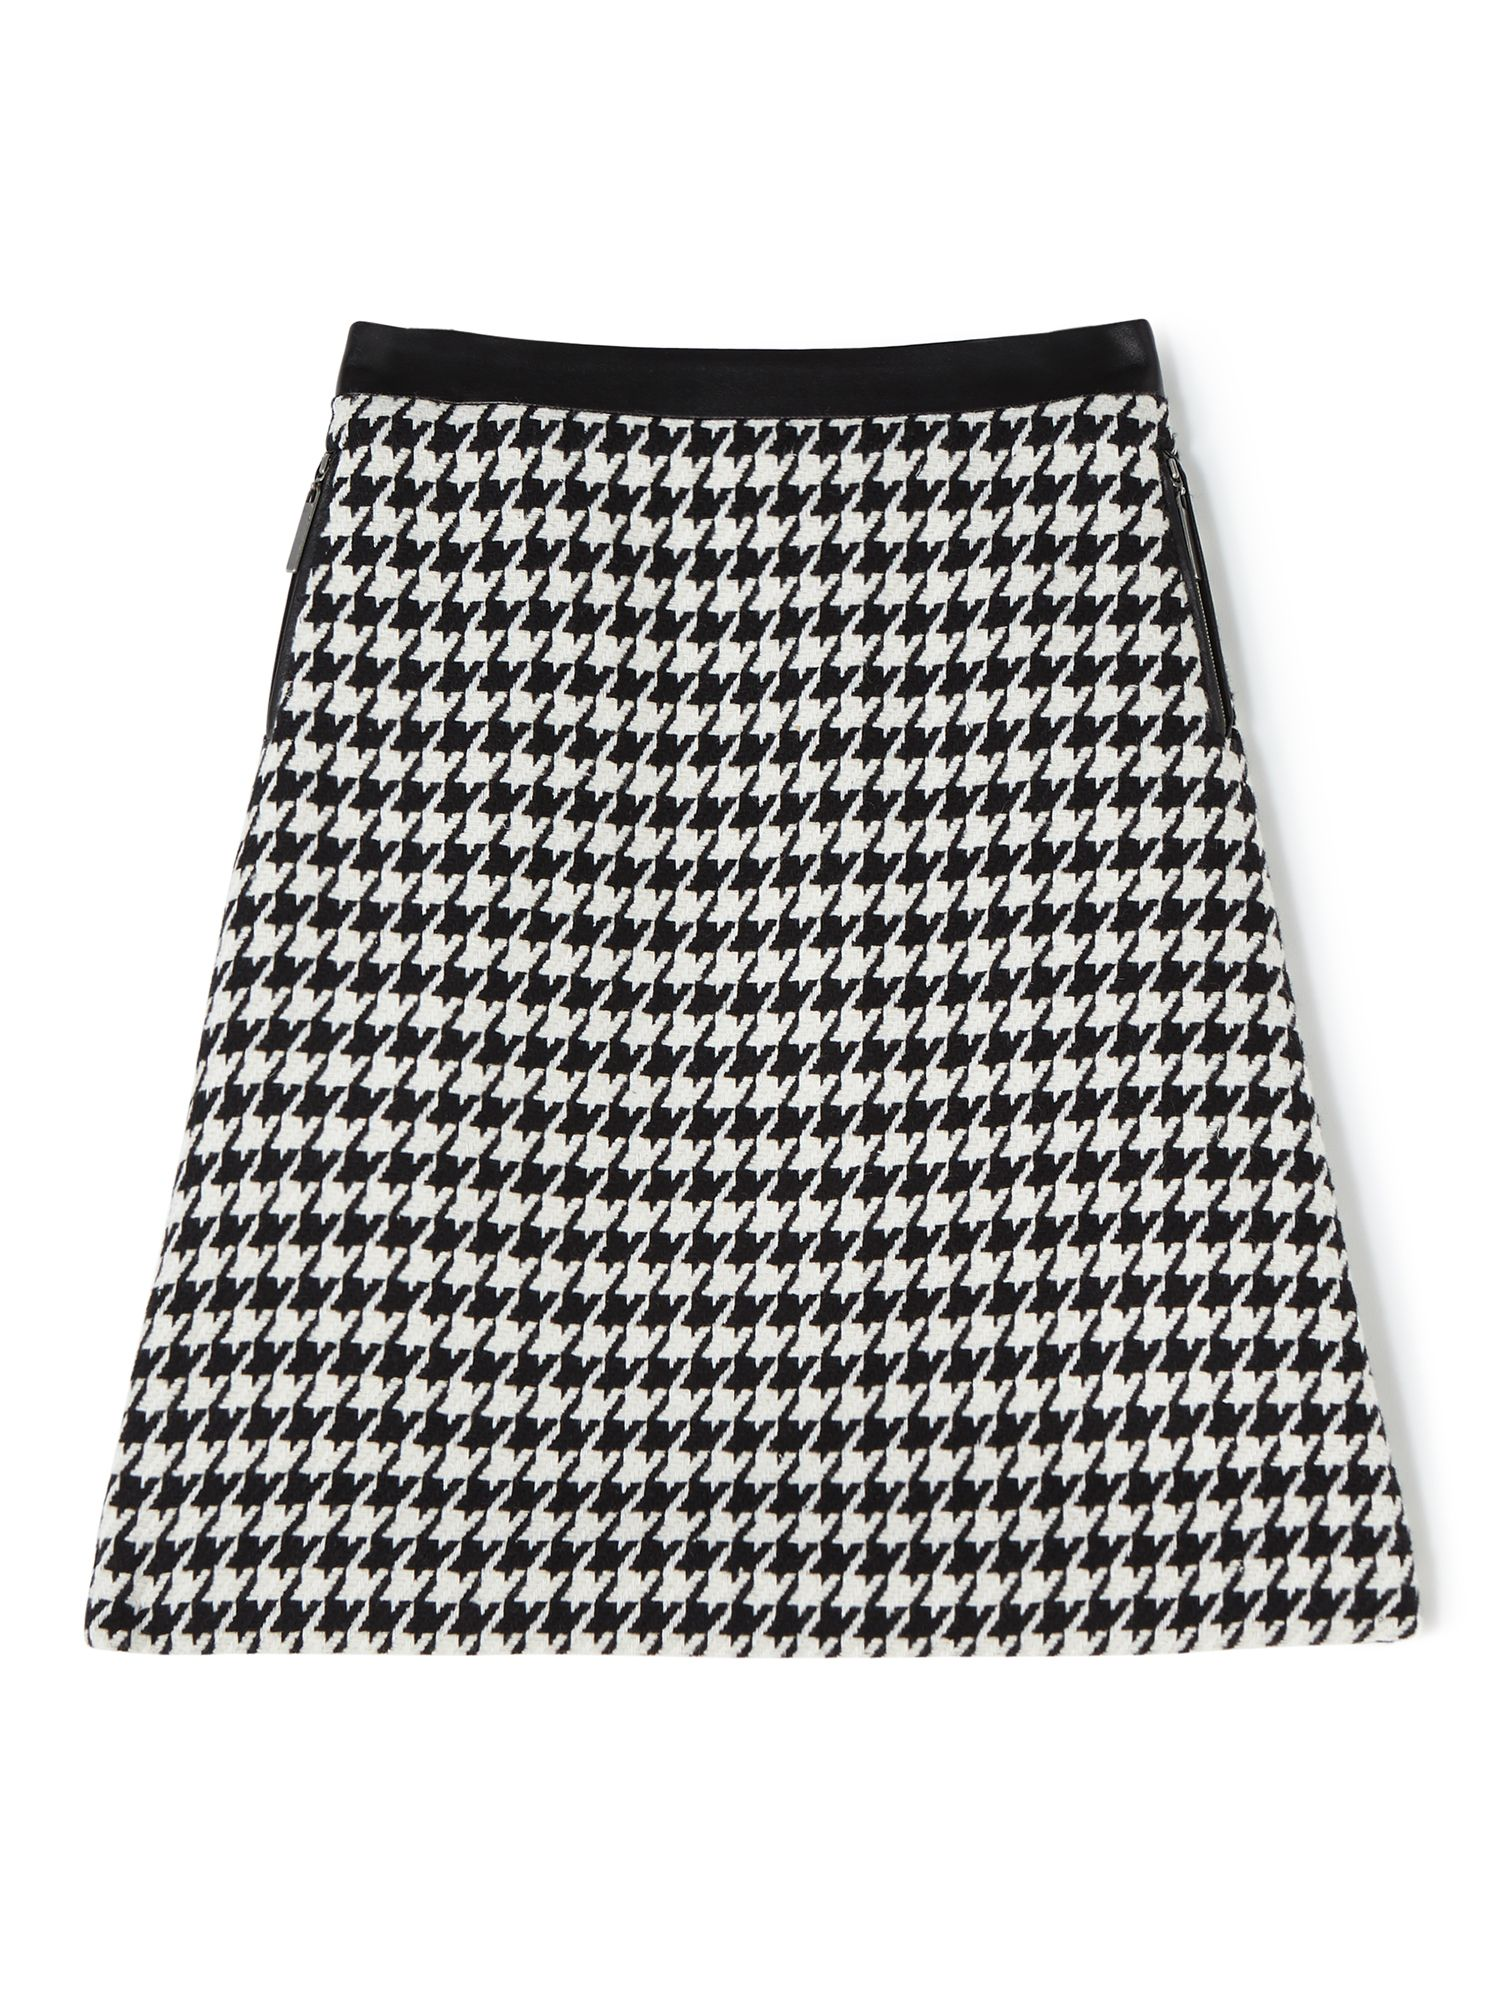 Precis Petite Sian Houndstooth Skirt, Multi-Coloured